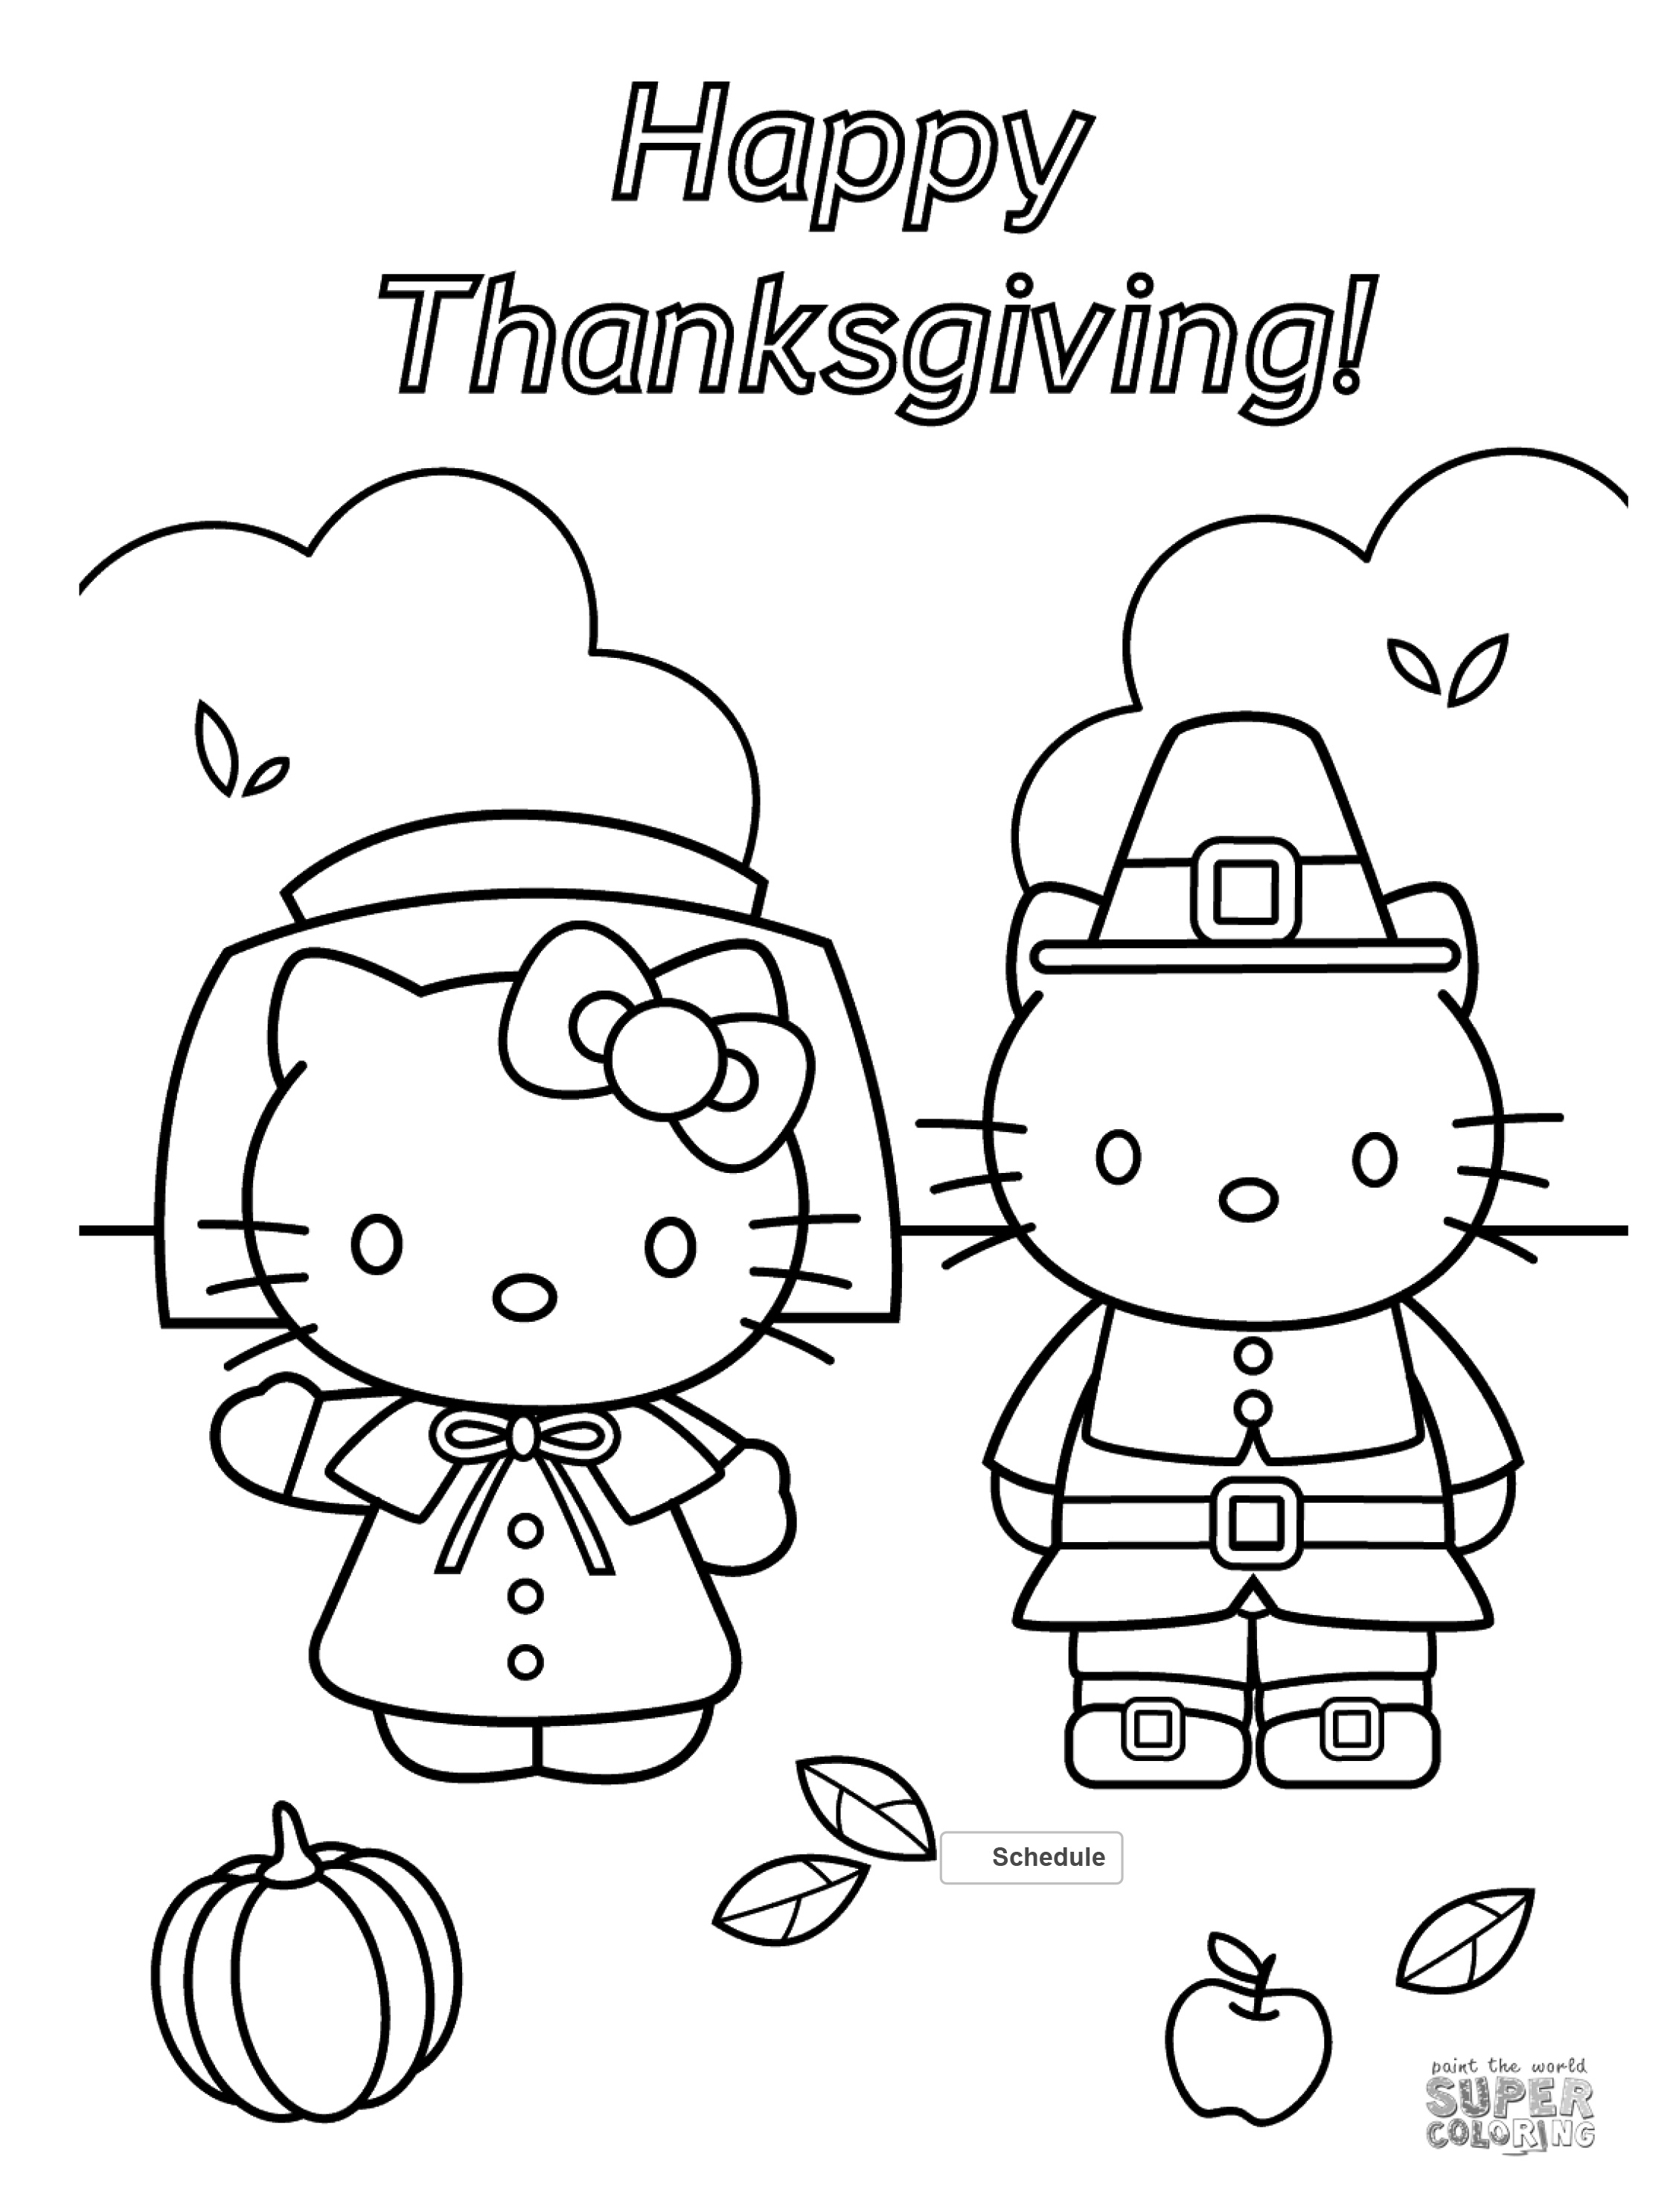 This is an image of Sassy Free Thanksgiving Printable Coloring Pages